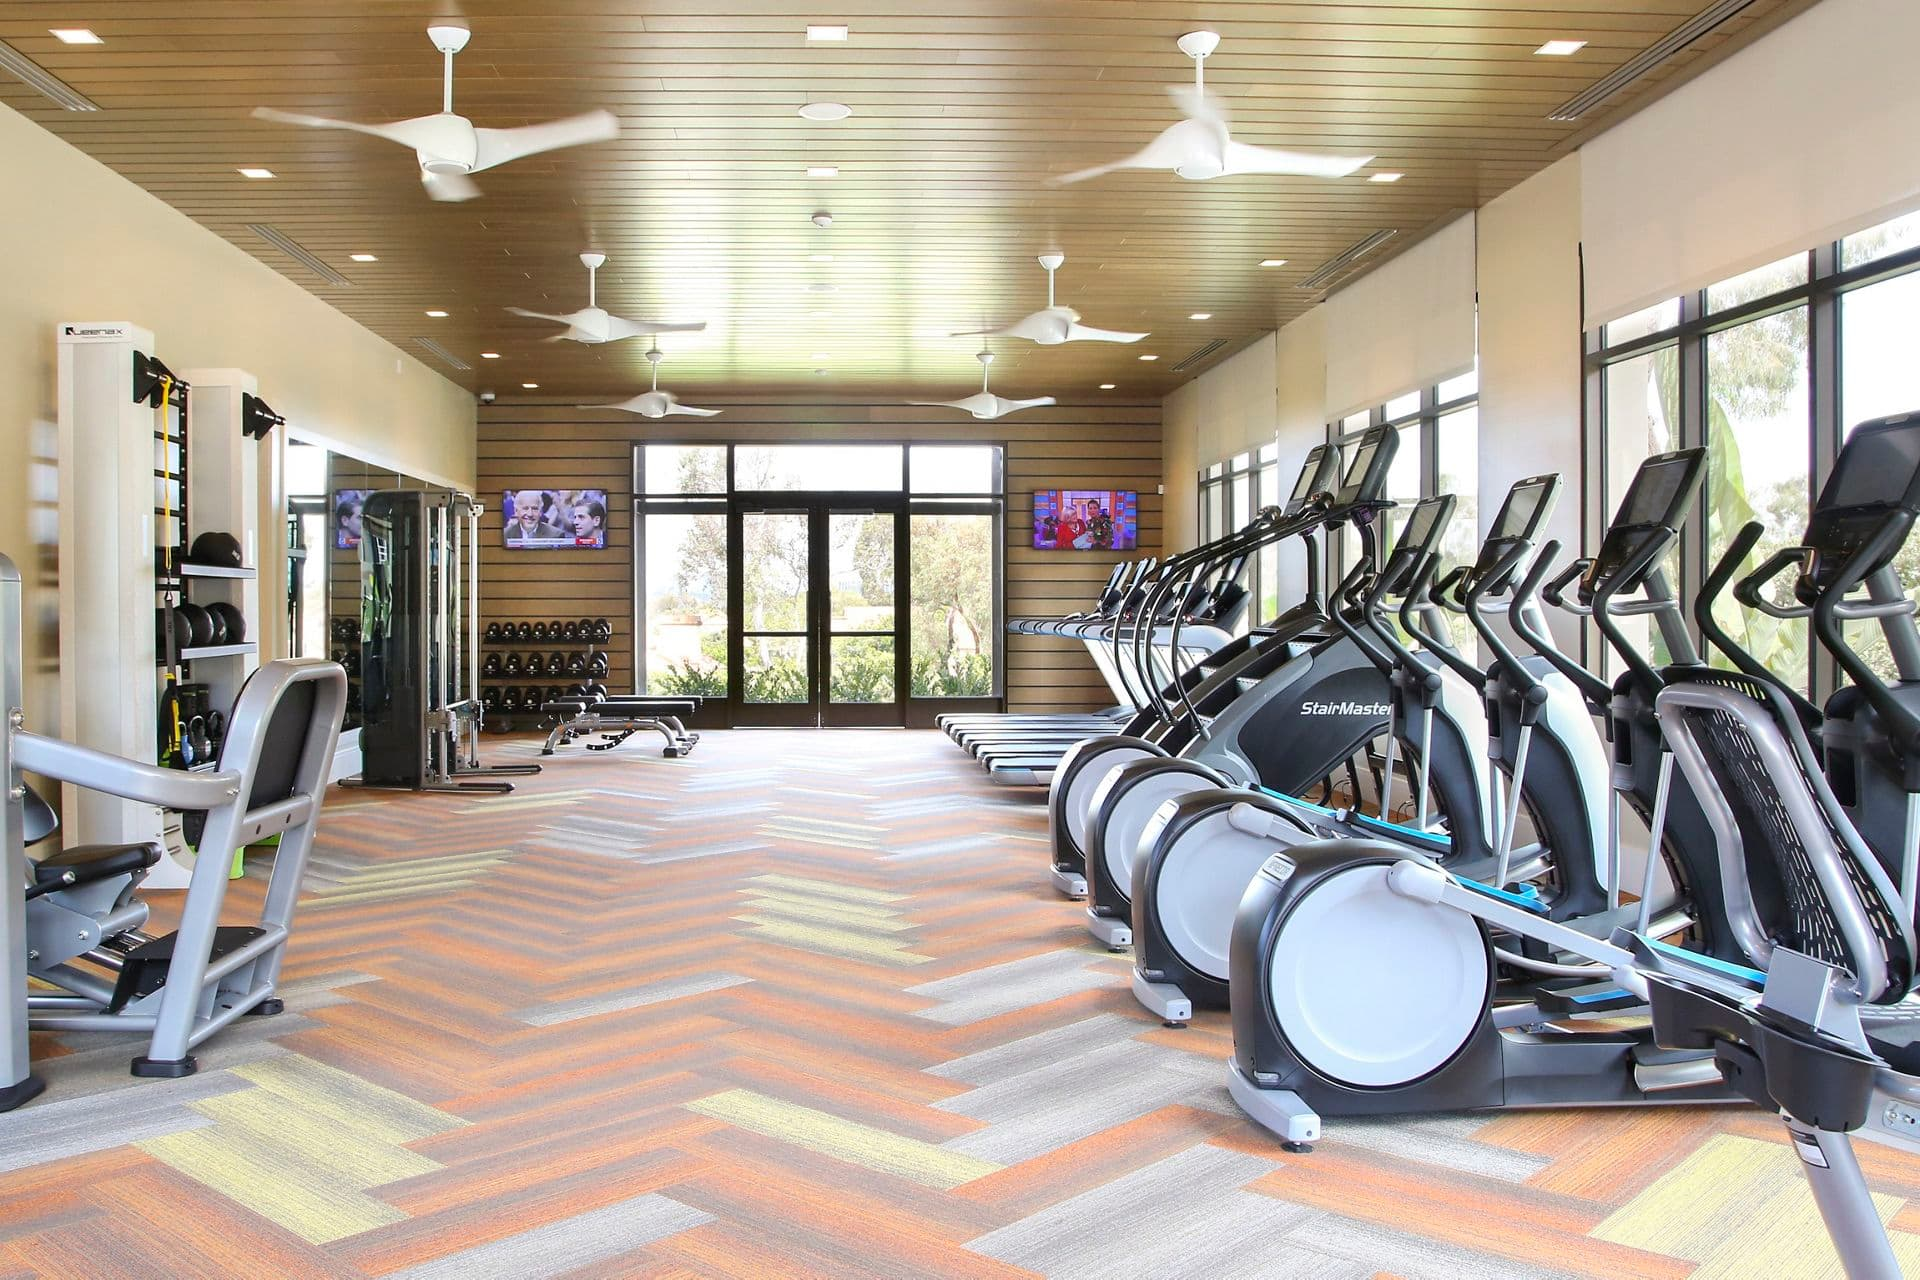 Interior view of fitness center at Newport North Apartment Homes in Newport Beach, CA.